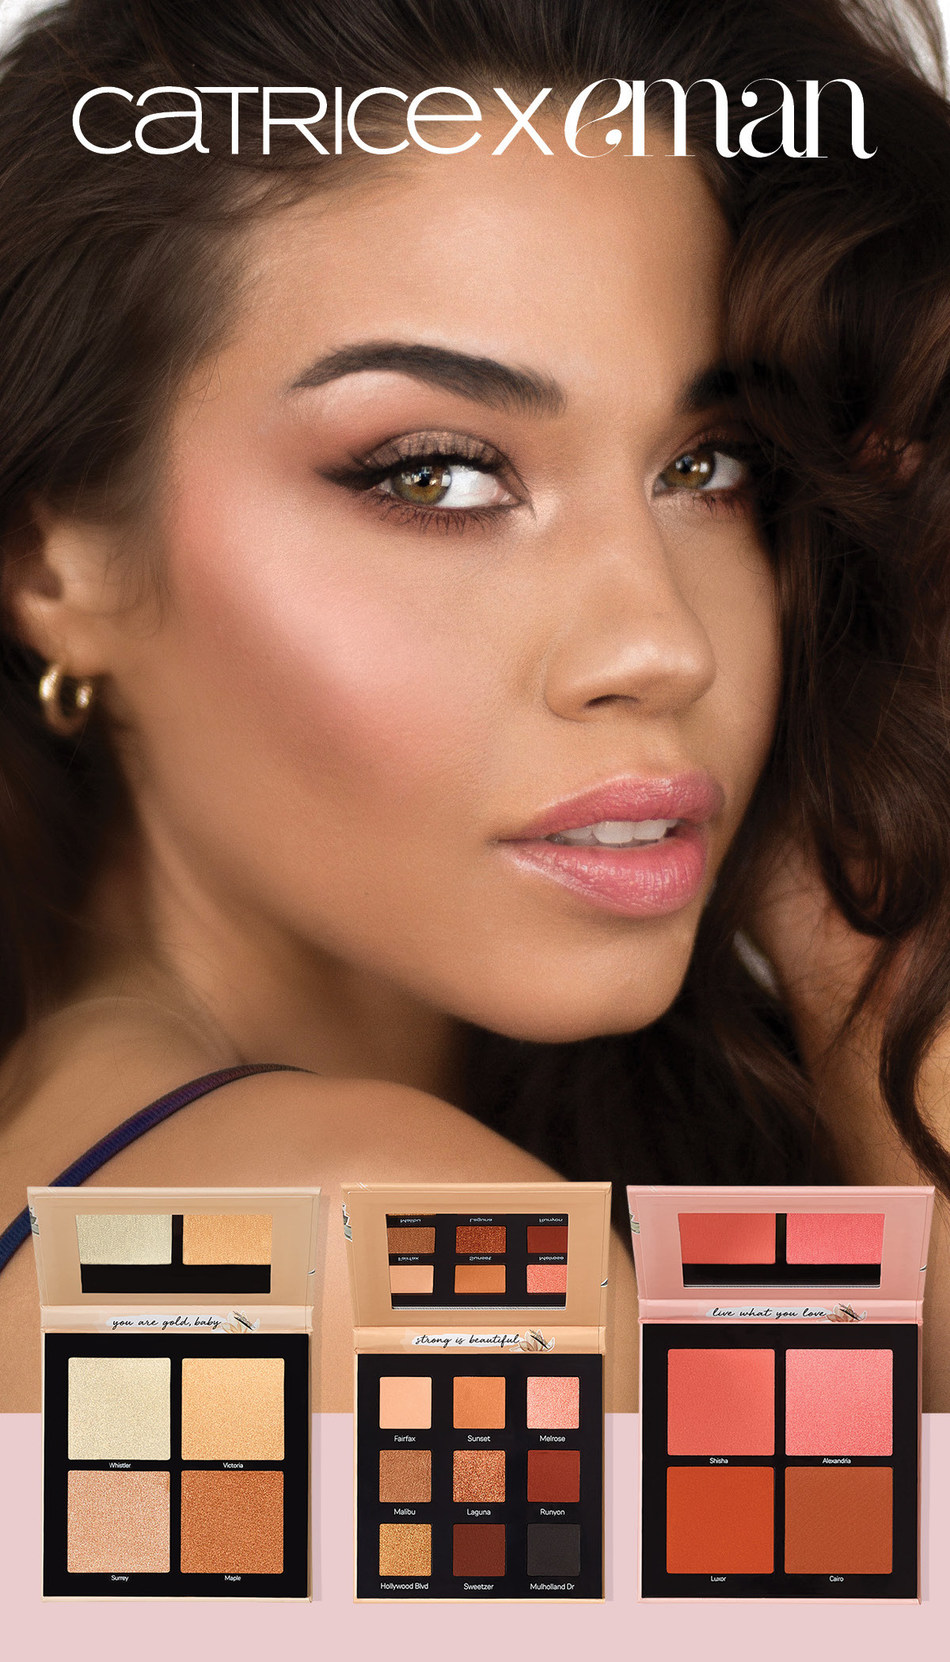 CATRICE Cosmetics partners with EMAN - Popular Beauty YouTuber and Makeup Artist. Meet EMAN in Toronto on October 25, 2019. (CNW Group/CATRICE Cosmetics)